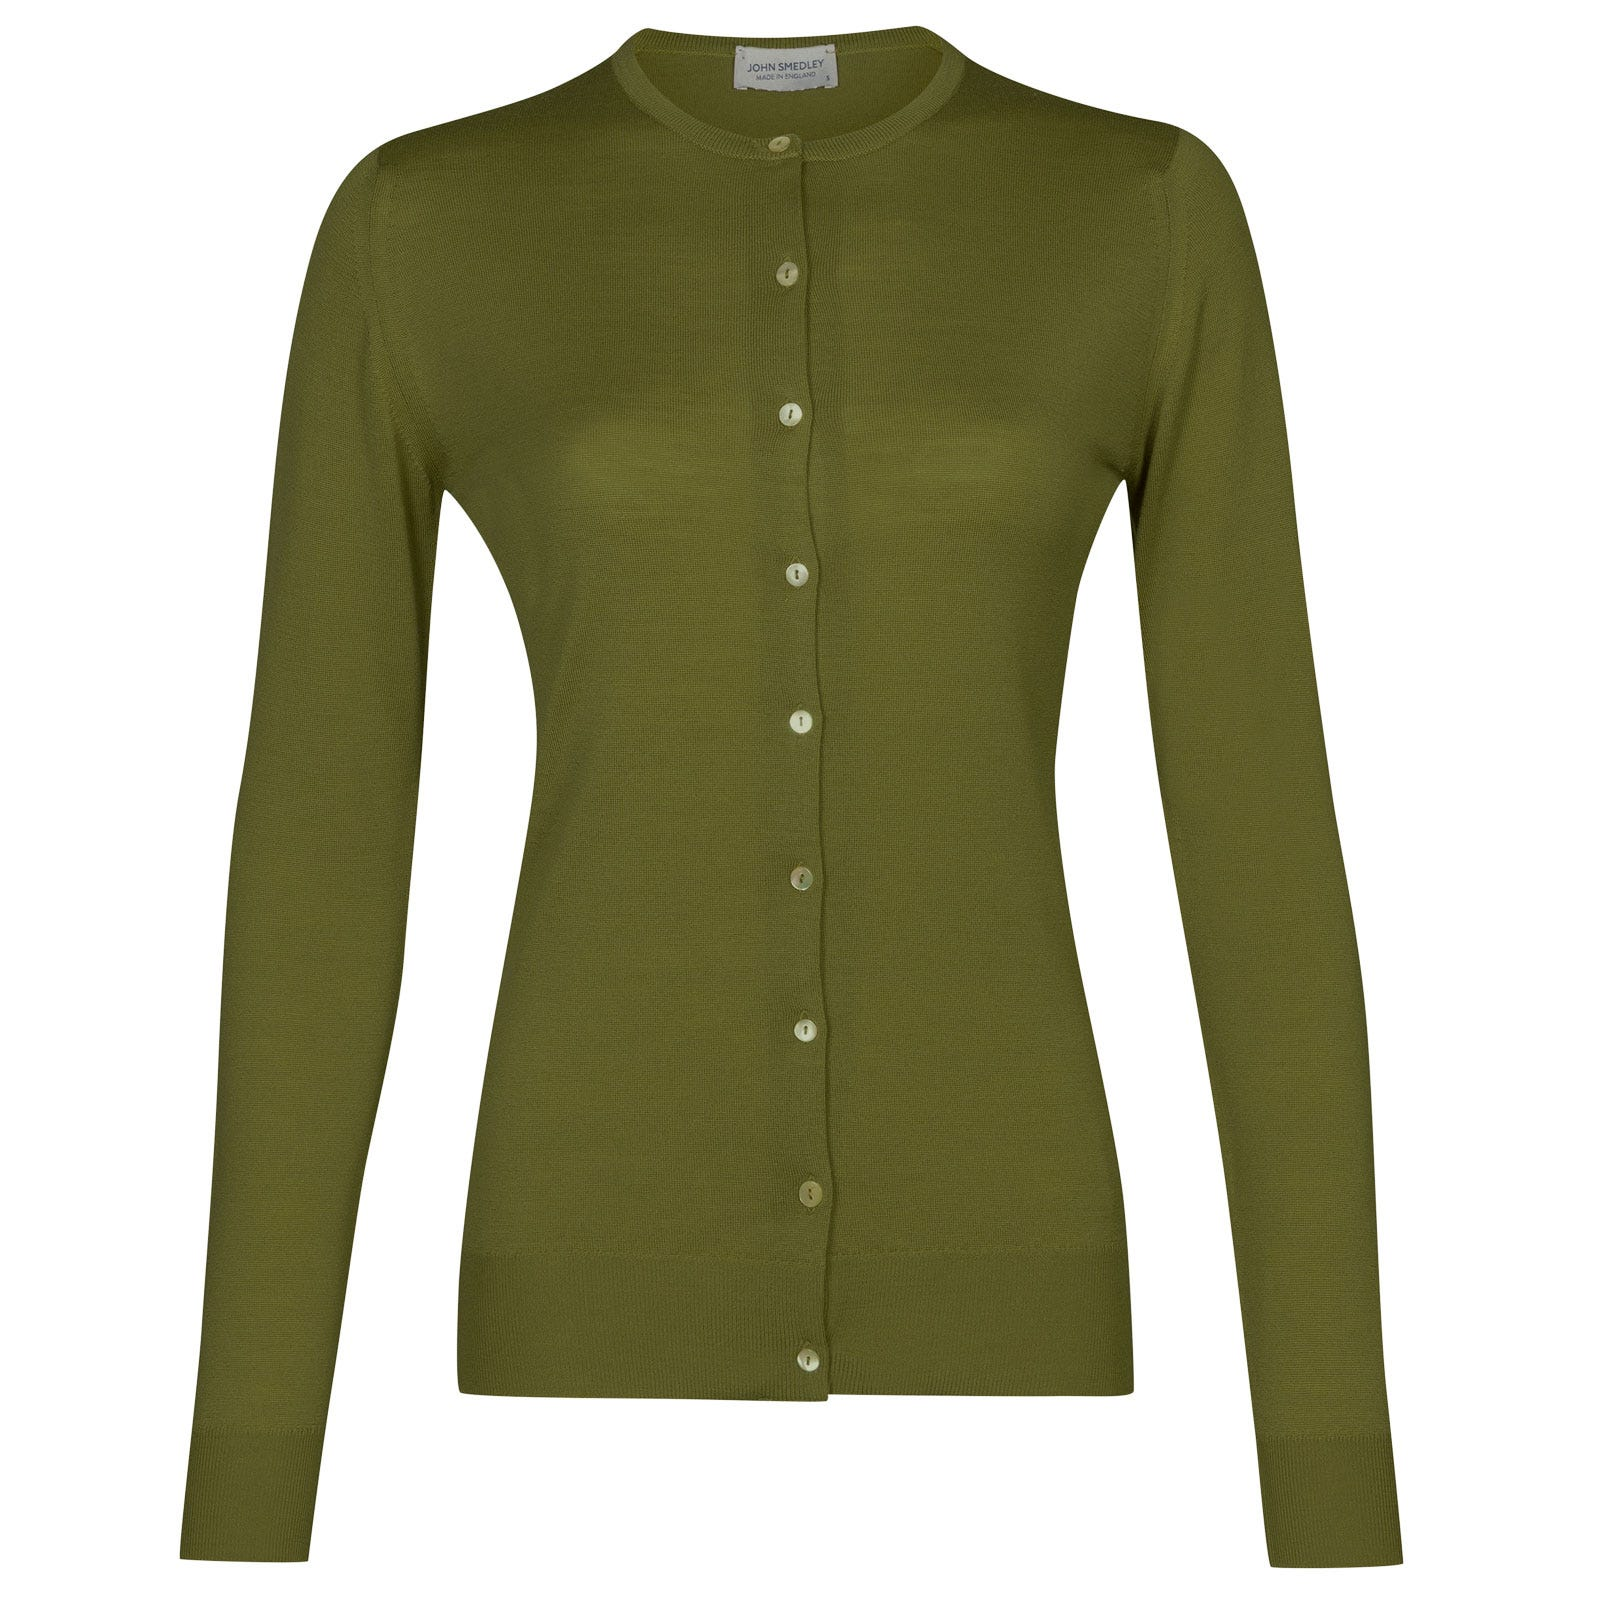 John Smedley buttercup Merino Wool Cardigan in Lumsdale Green-XL